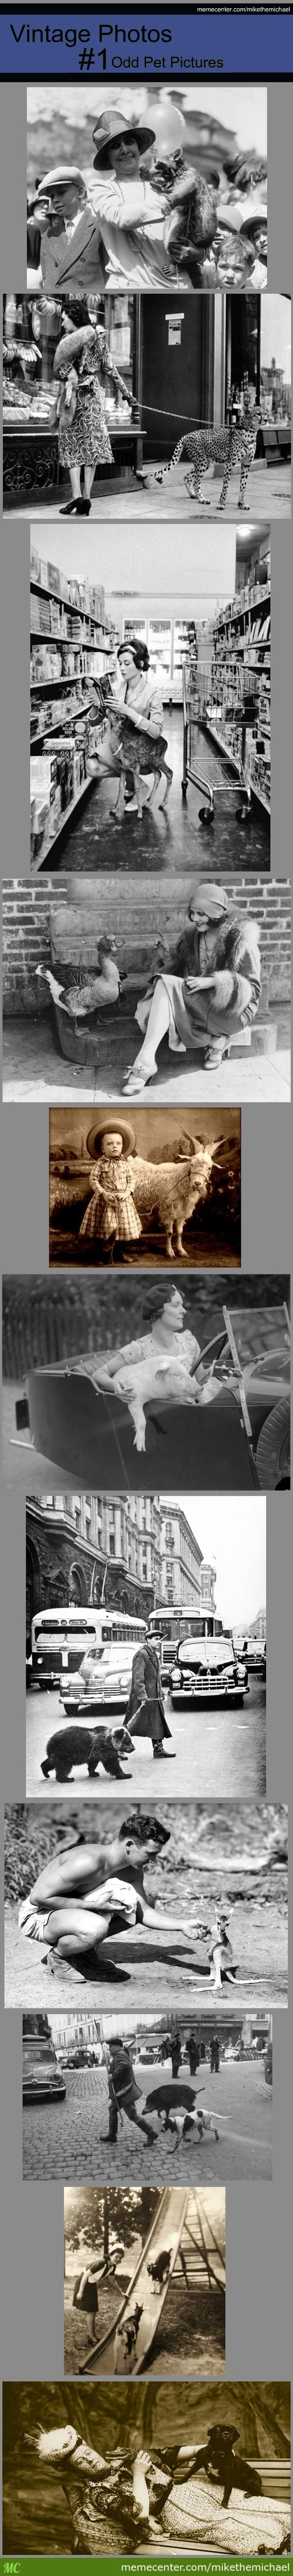 Vintage Photos #1- Odd Pet Pictures